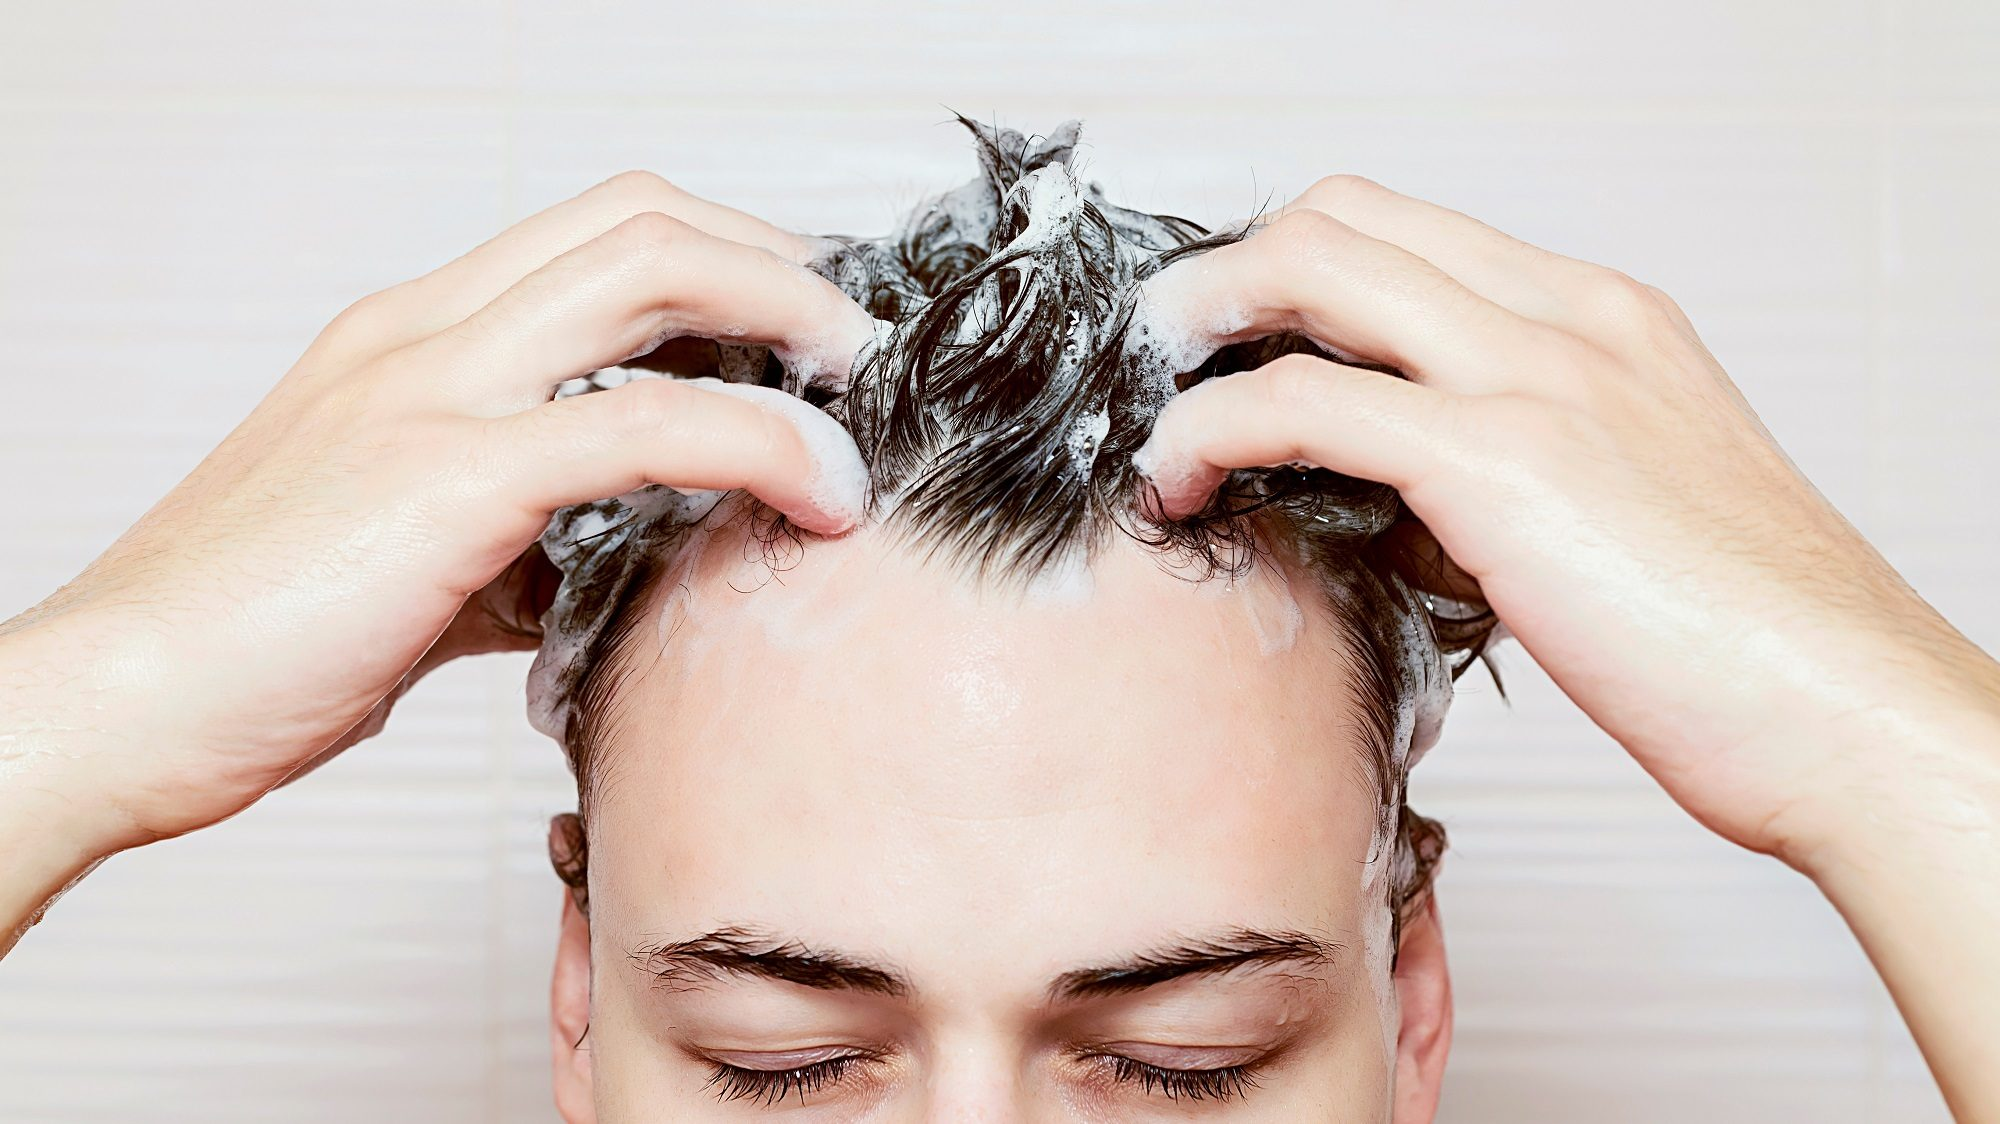 Scalp care tips for men: Deep cleanse hair and scalp